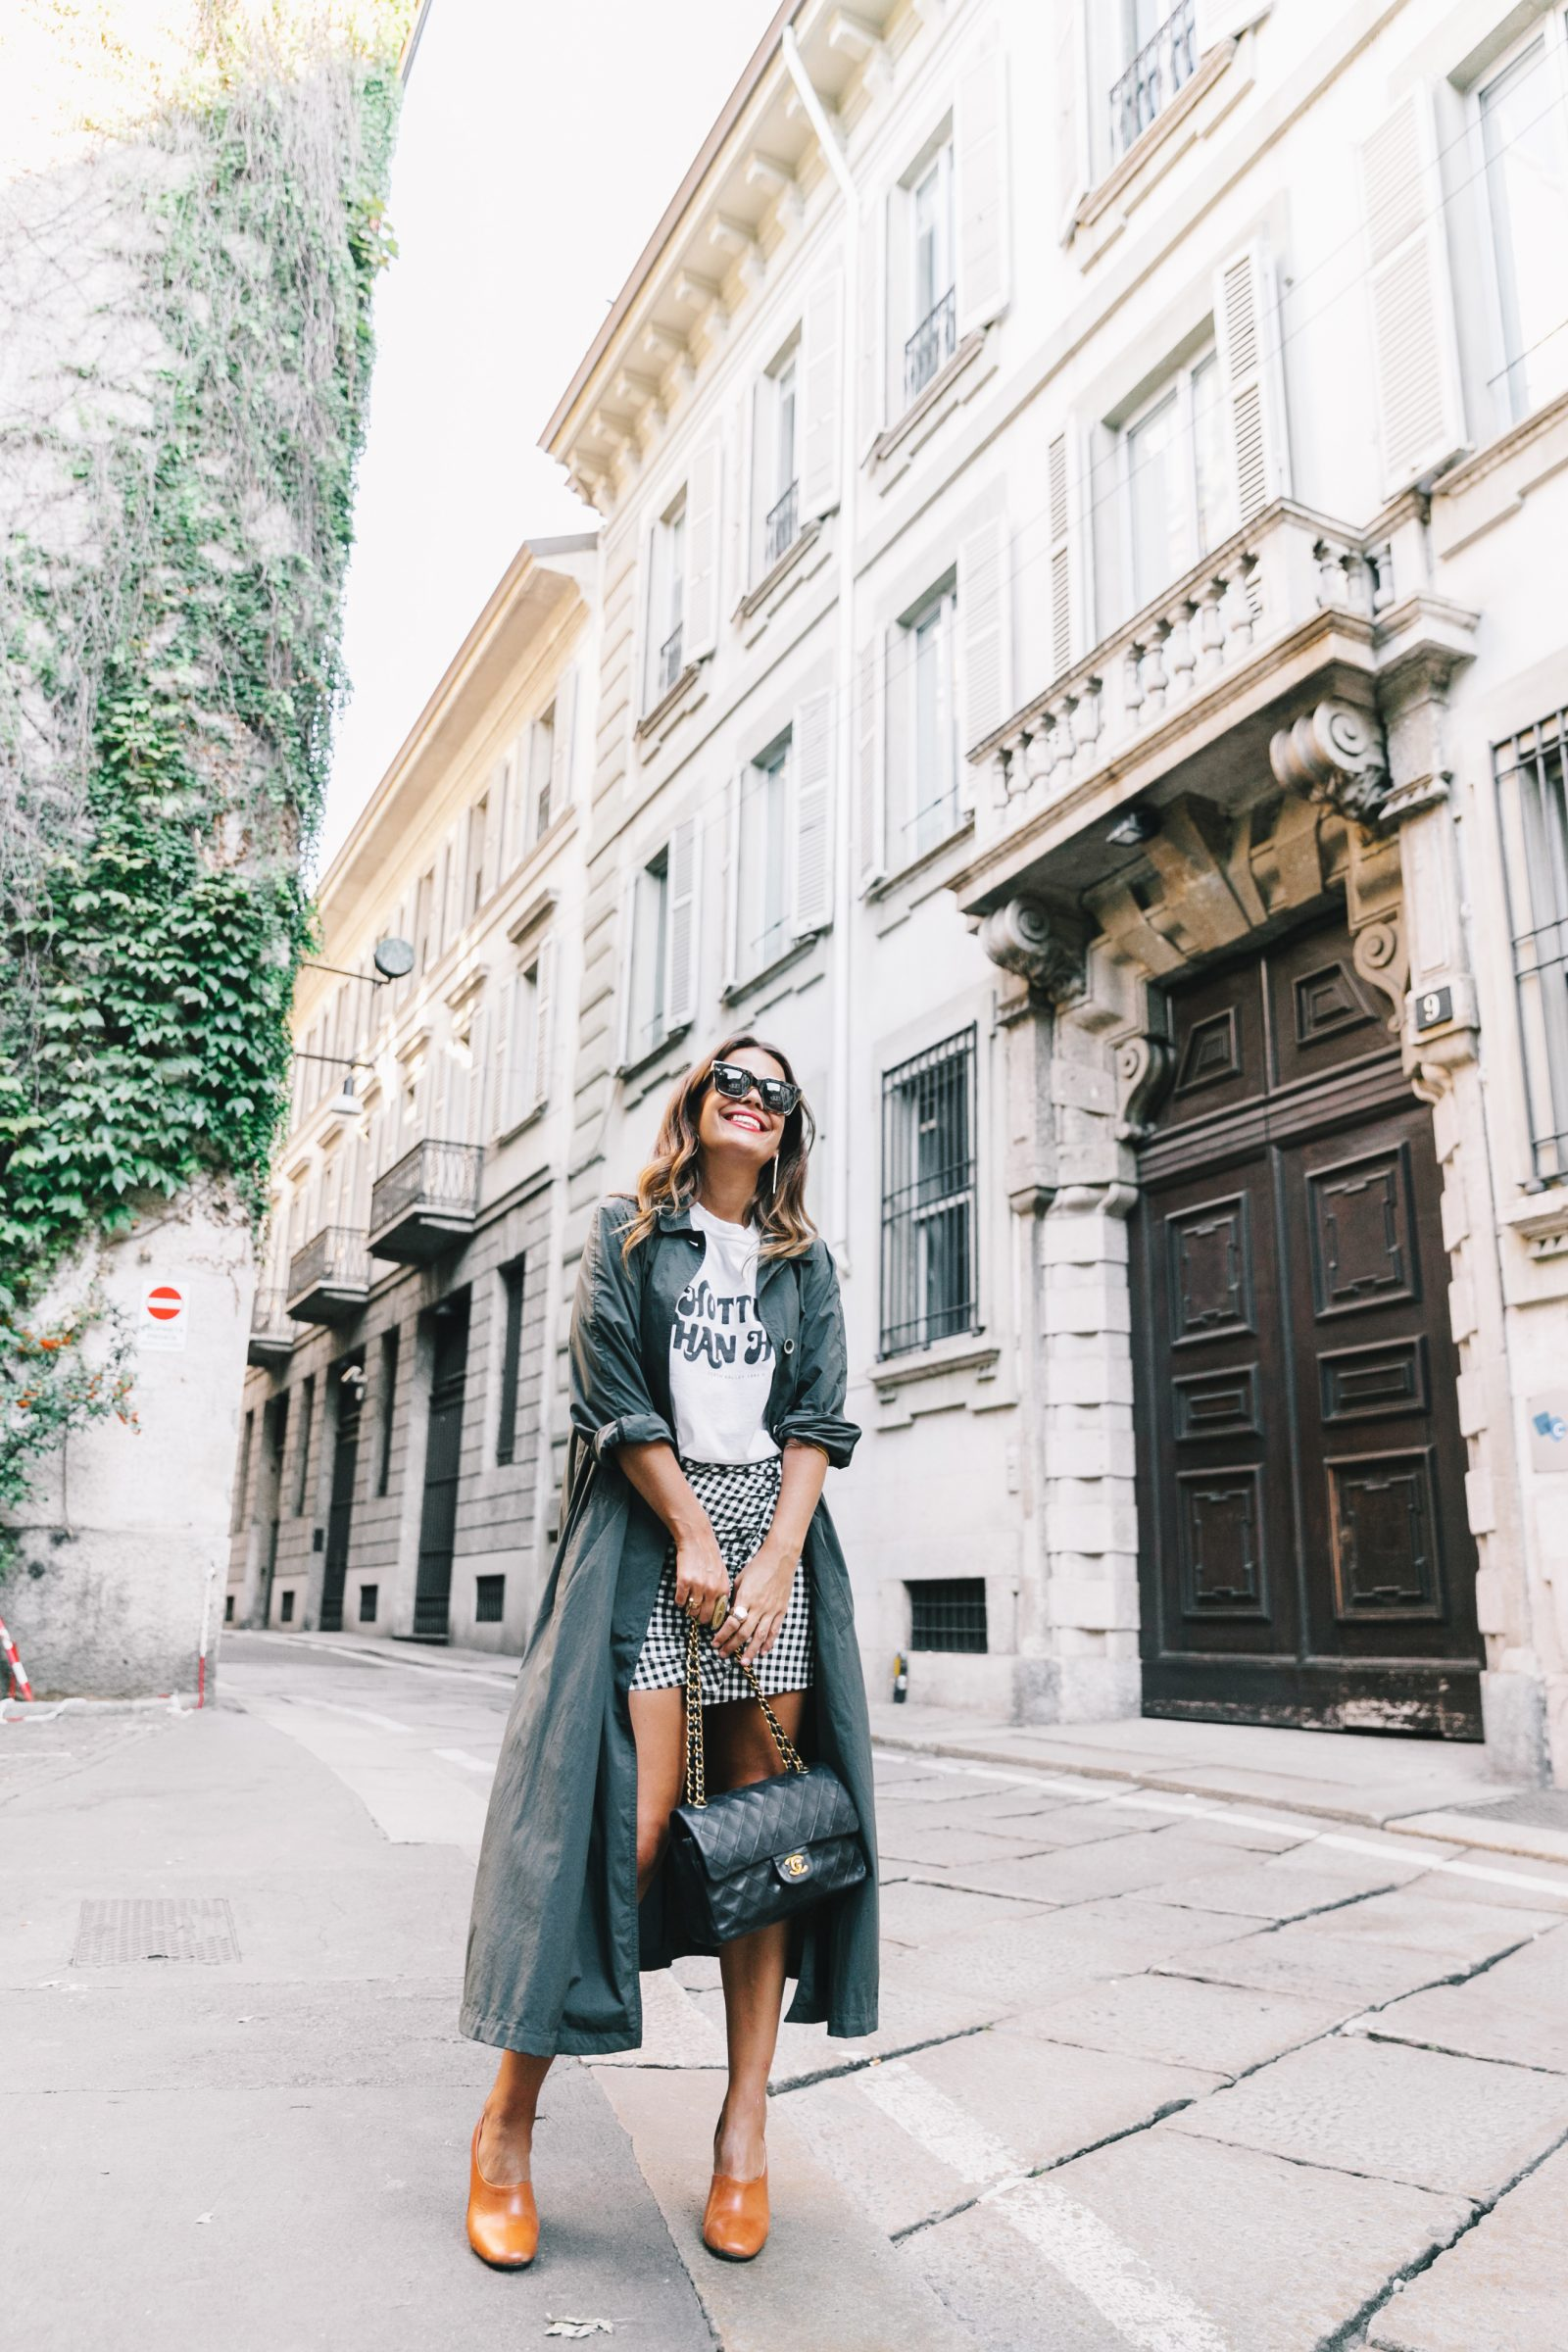 mfw-milan_fashion_week_ss17-street_style-outfits-collage_vintage-bottega_veneta-bluemarine-jil_sander-13